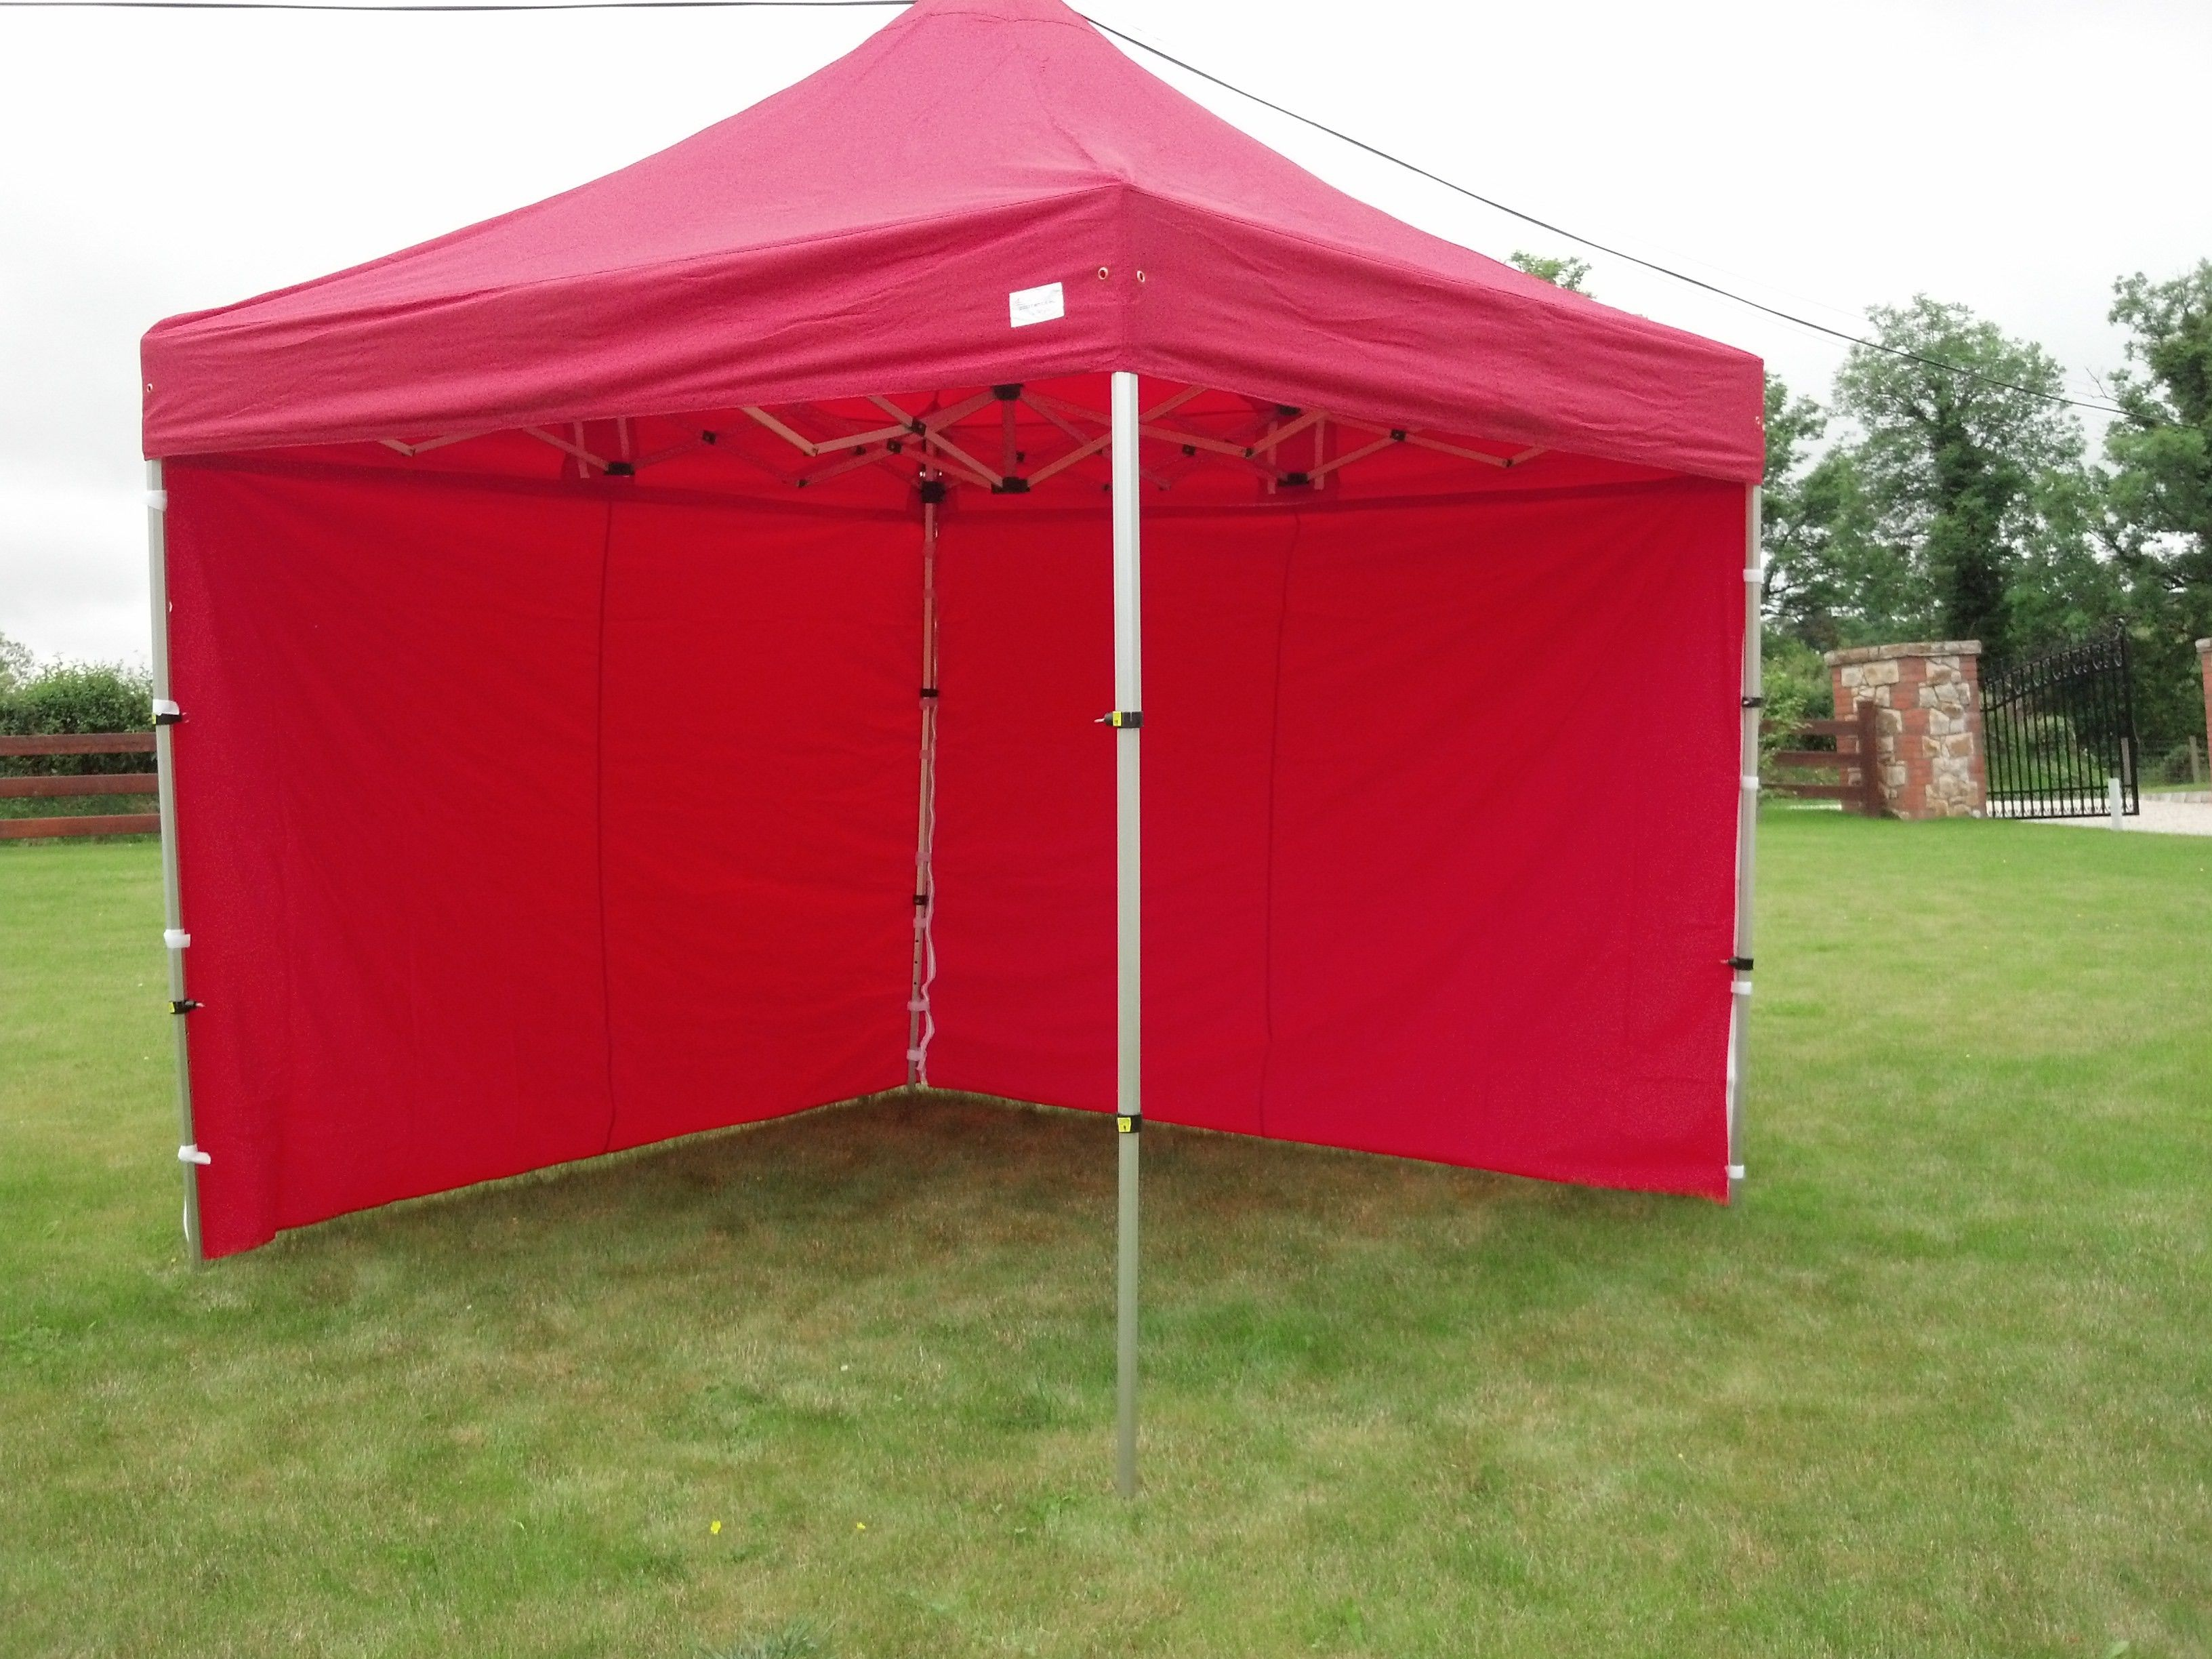 3m X 3m Heavy Duty Pop Up Tents Red Ireland Uk Heavy Duty Gazebo Gazebo Pop Up Tent